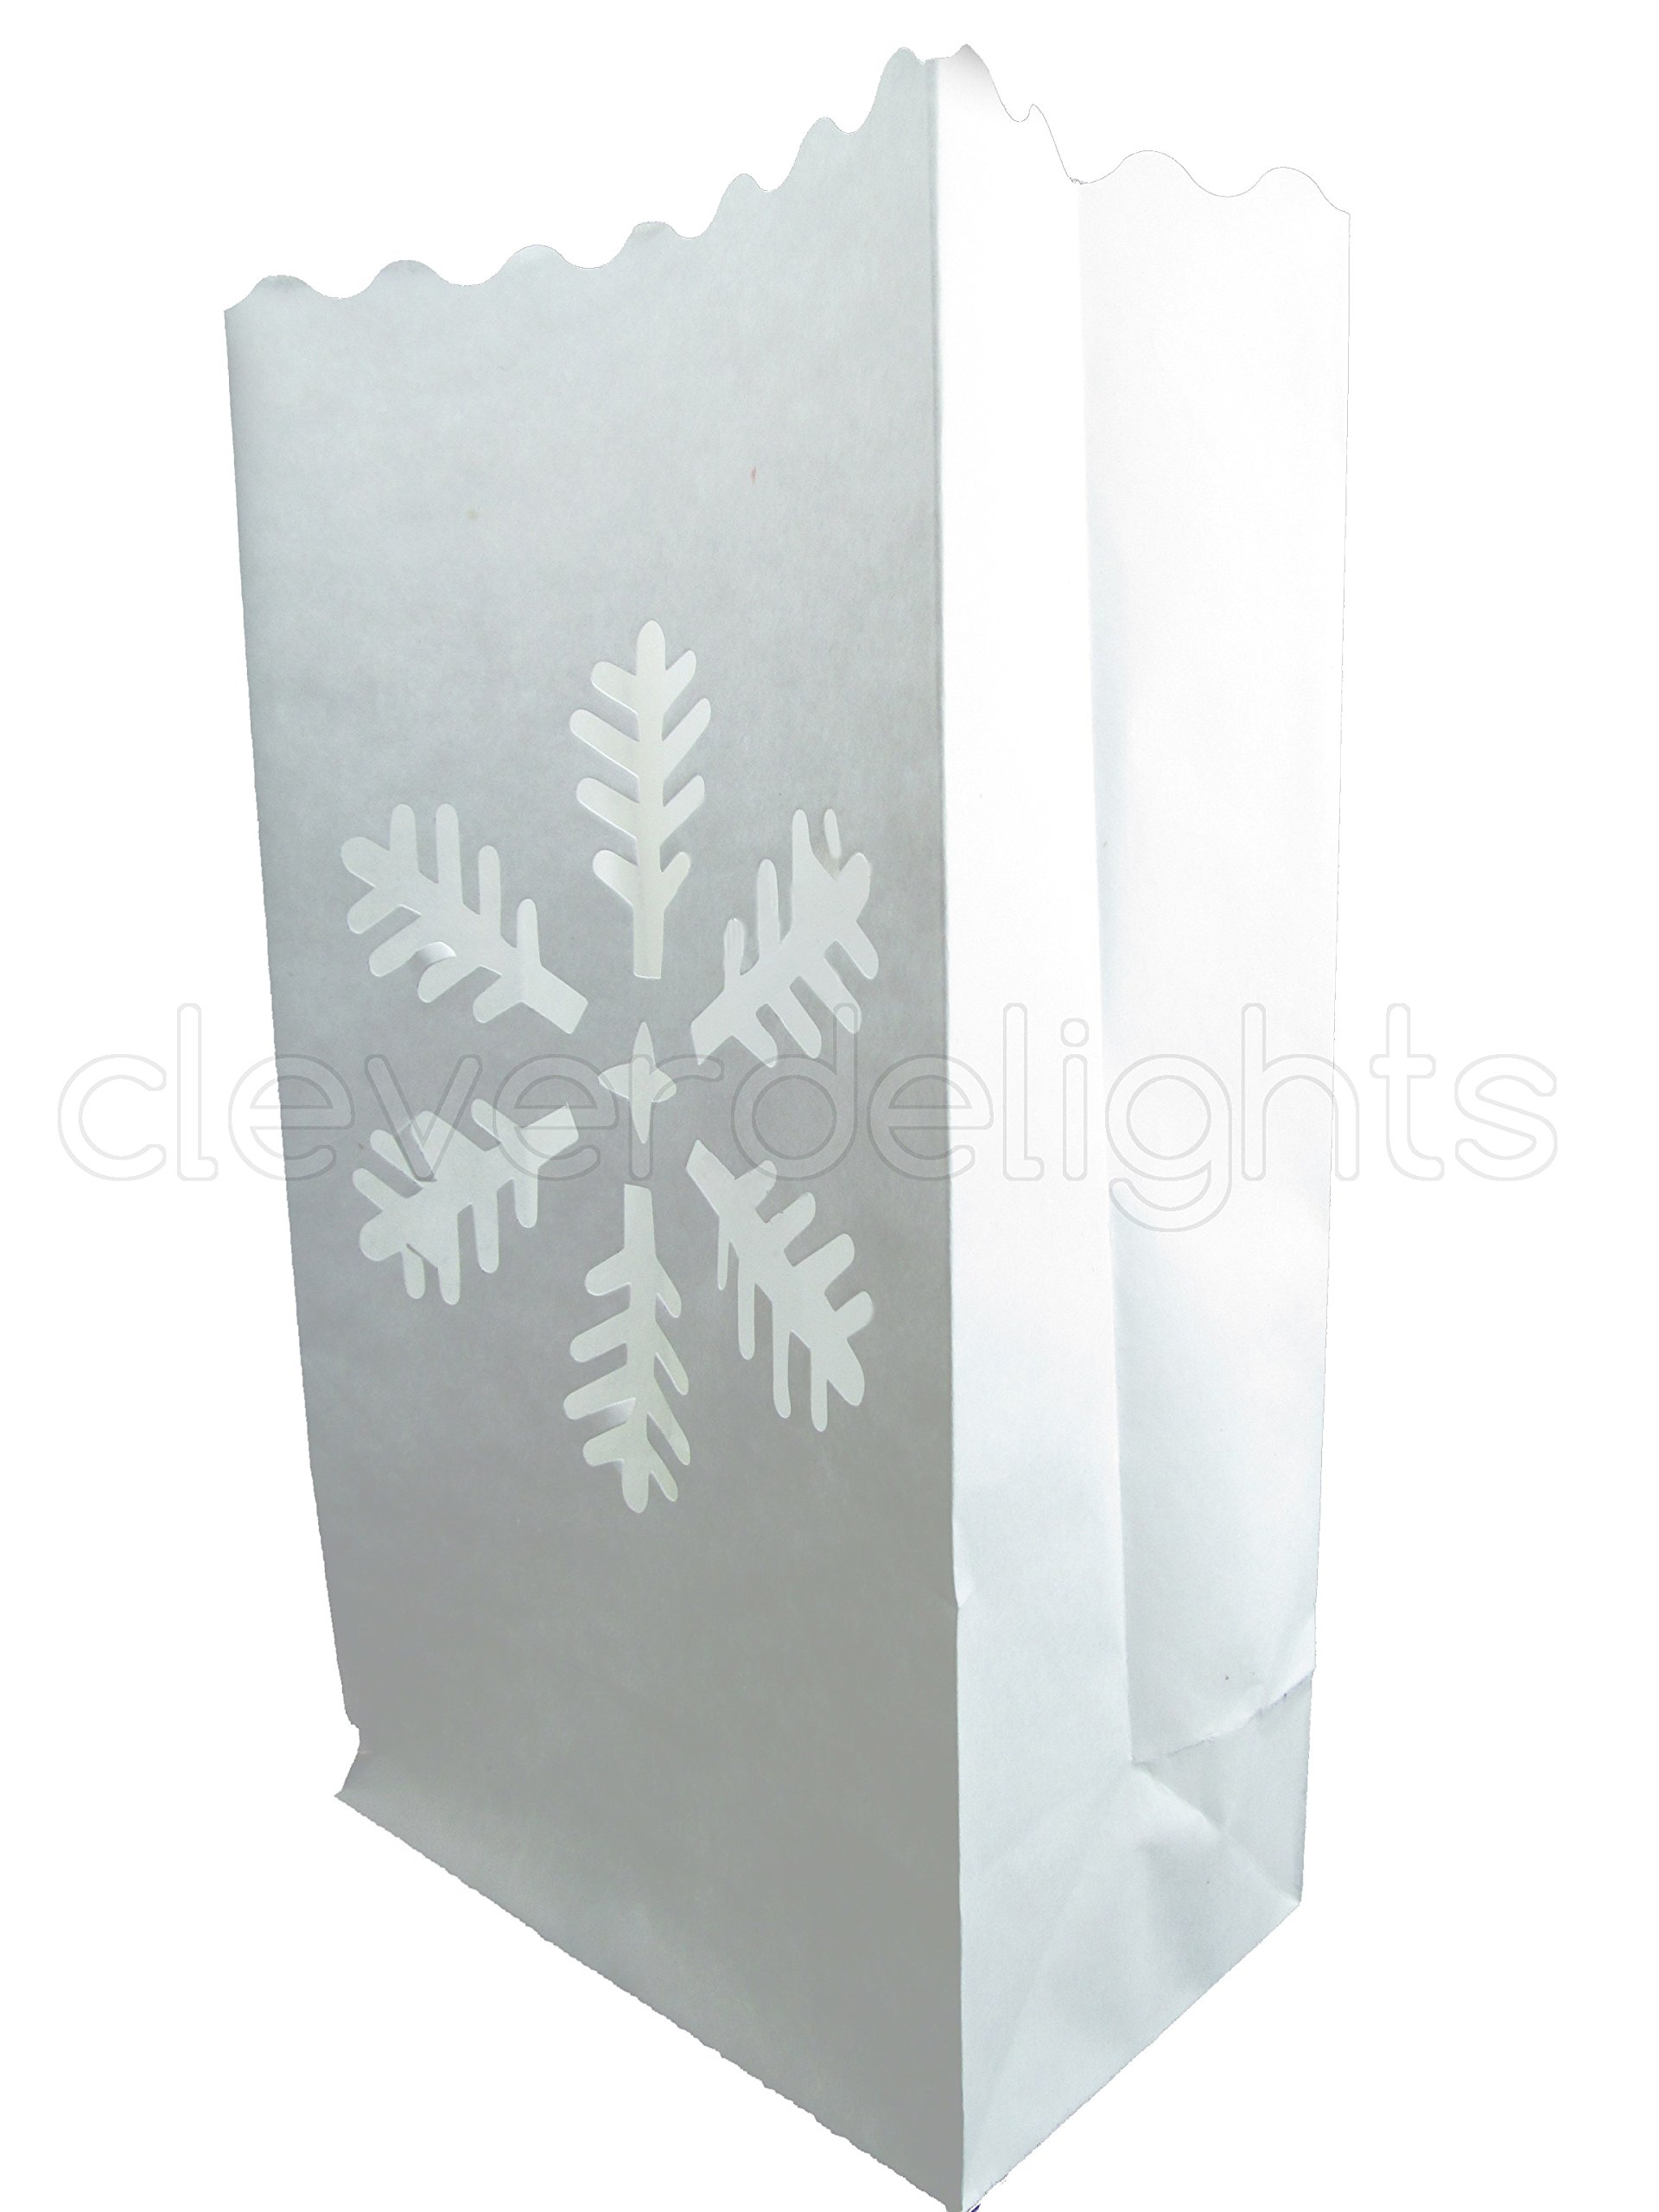 CleverDelights White Luminary Bags - 20 Count - Snowflake Design - Flame Resistant Paper - Christmas Holiday Outdoor Decorations - Party and Event Decor - Luminaria Candle Bag by CleverDelights